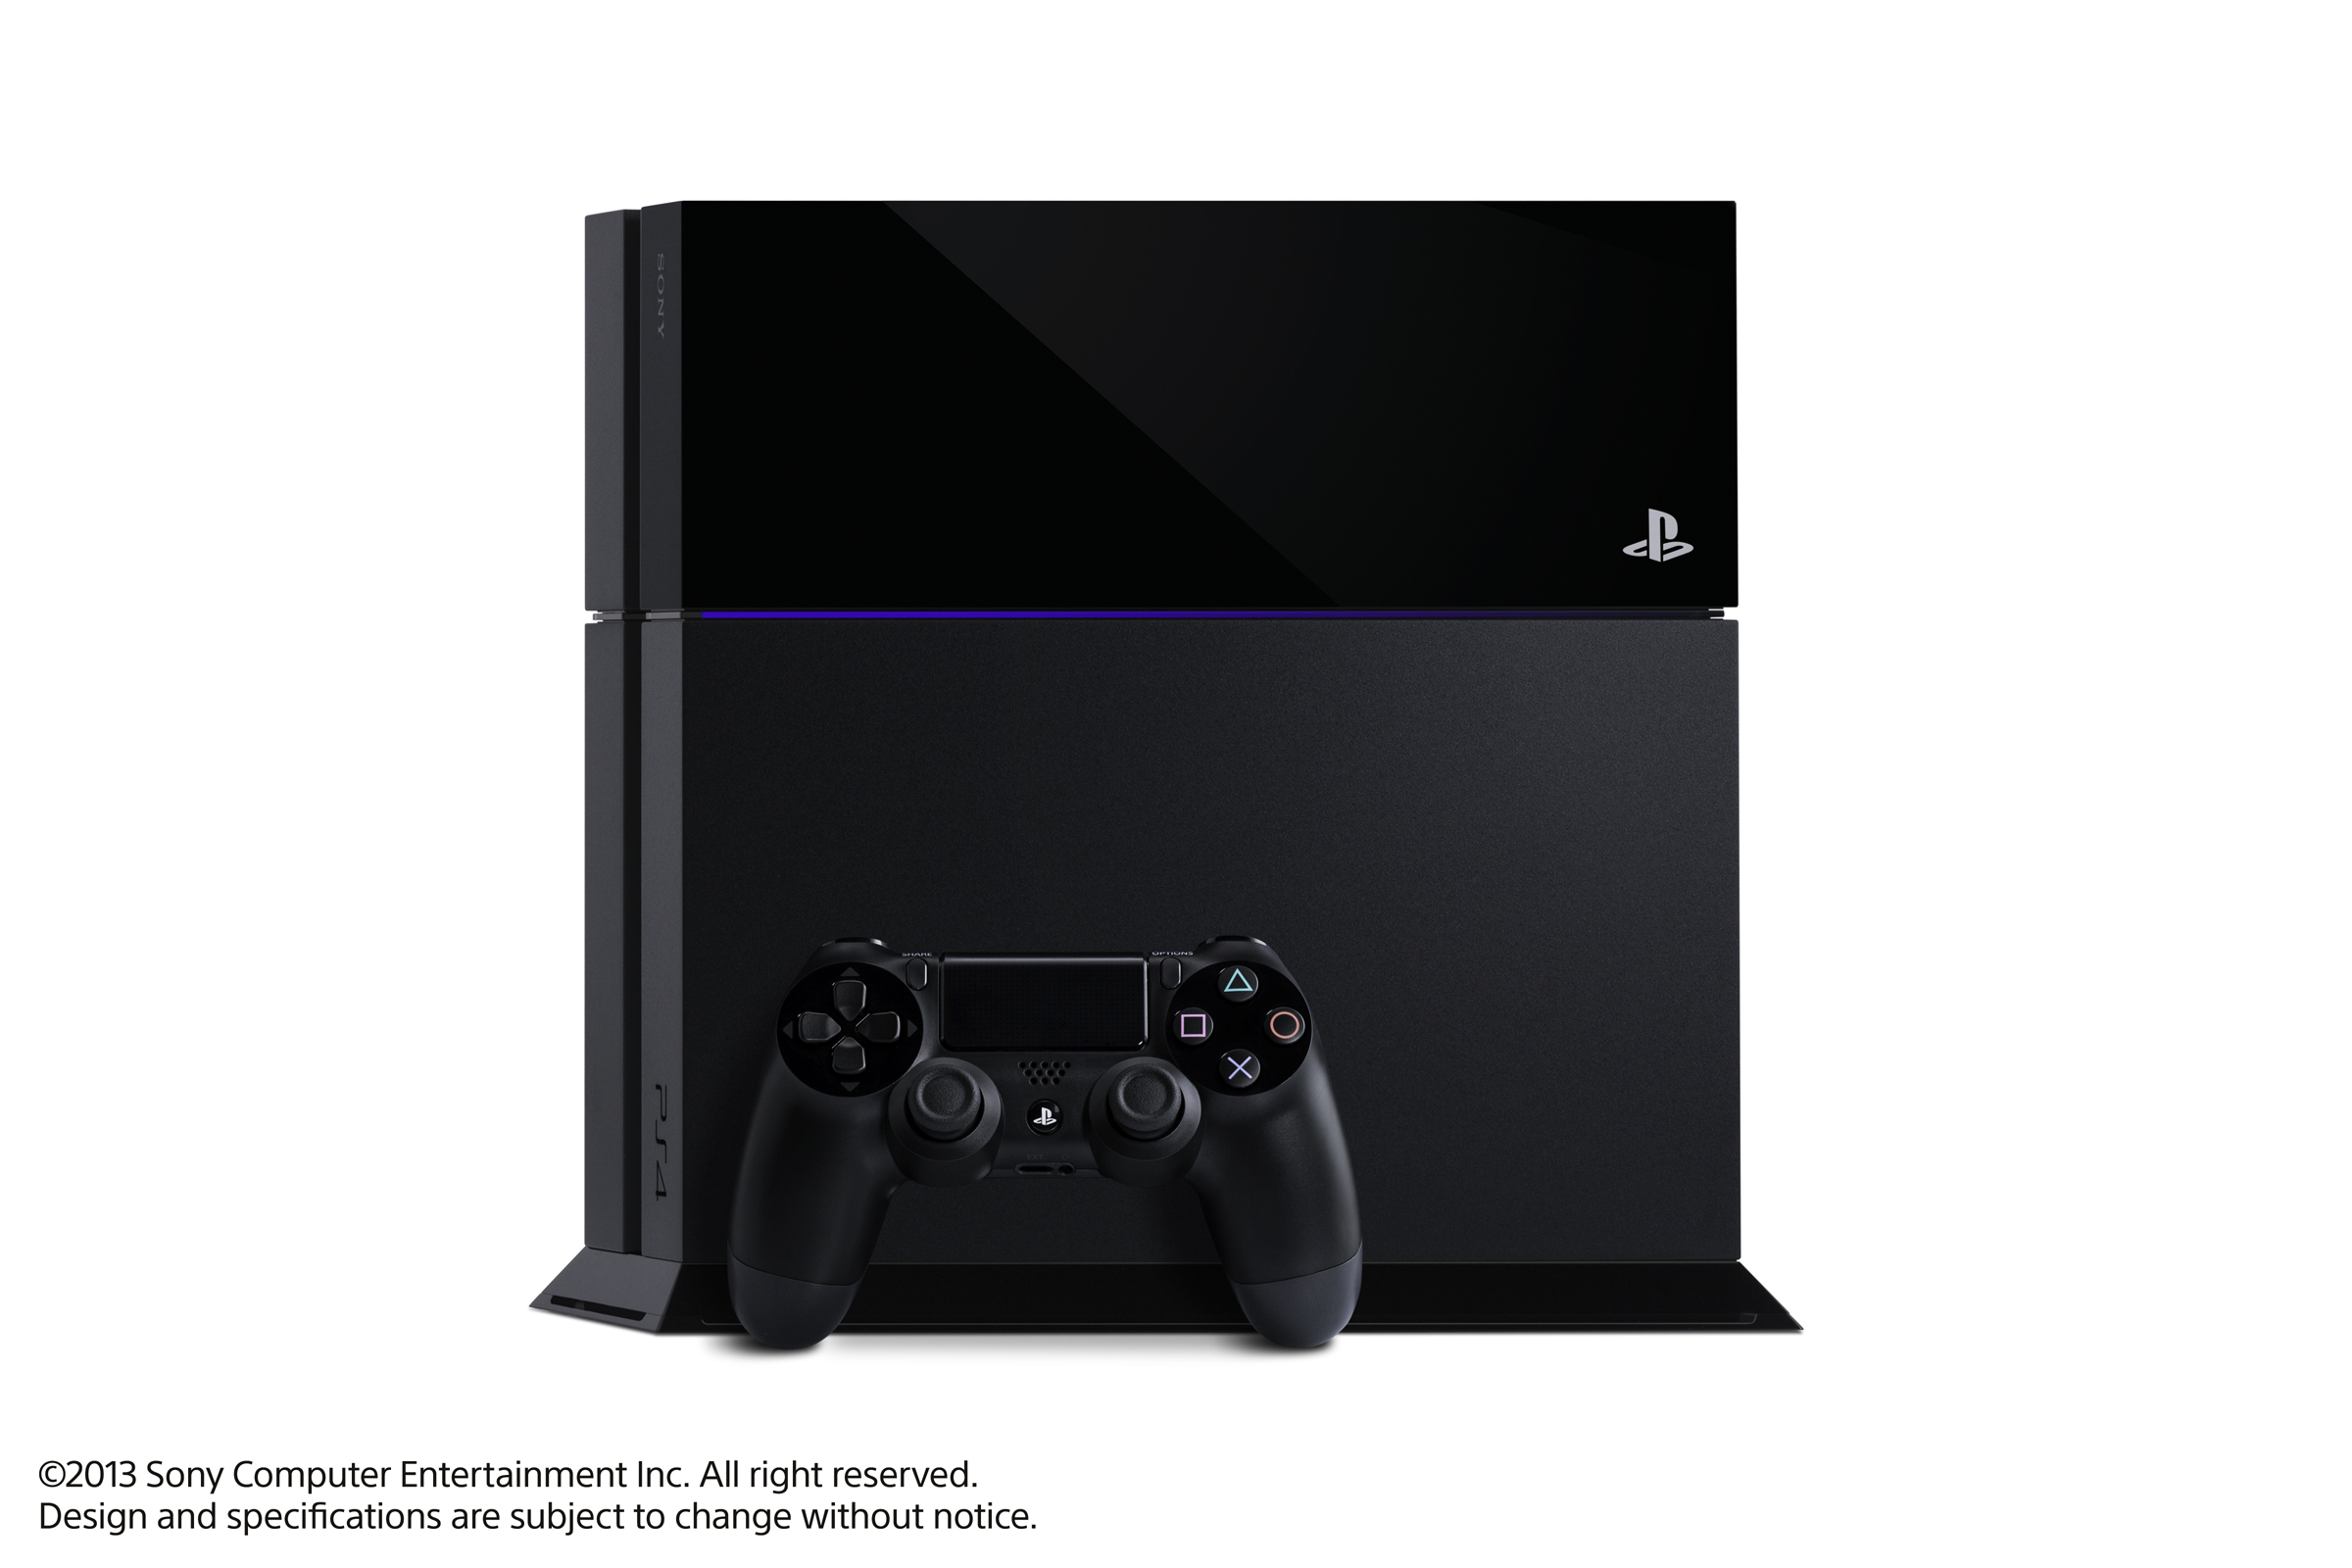 E3 2013: A Closer Look at the PlayStation 4, DualShock 4 ...